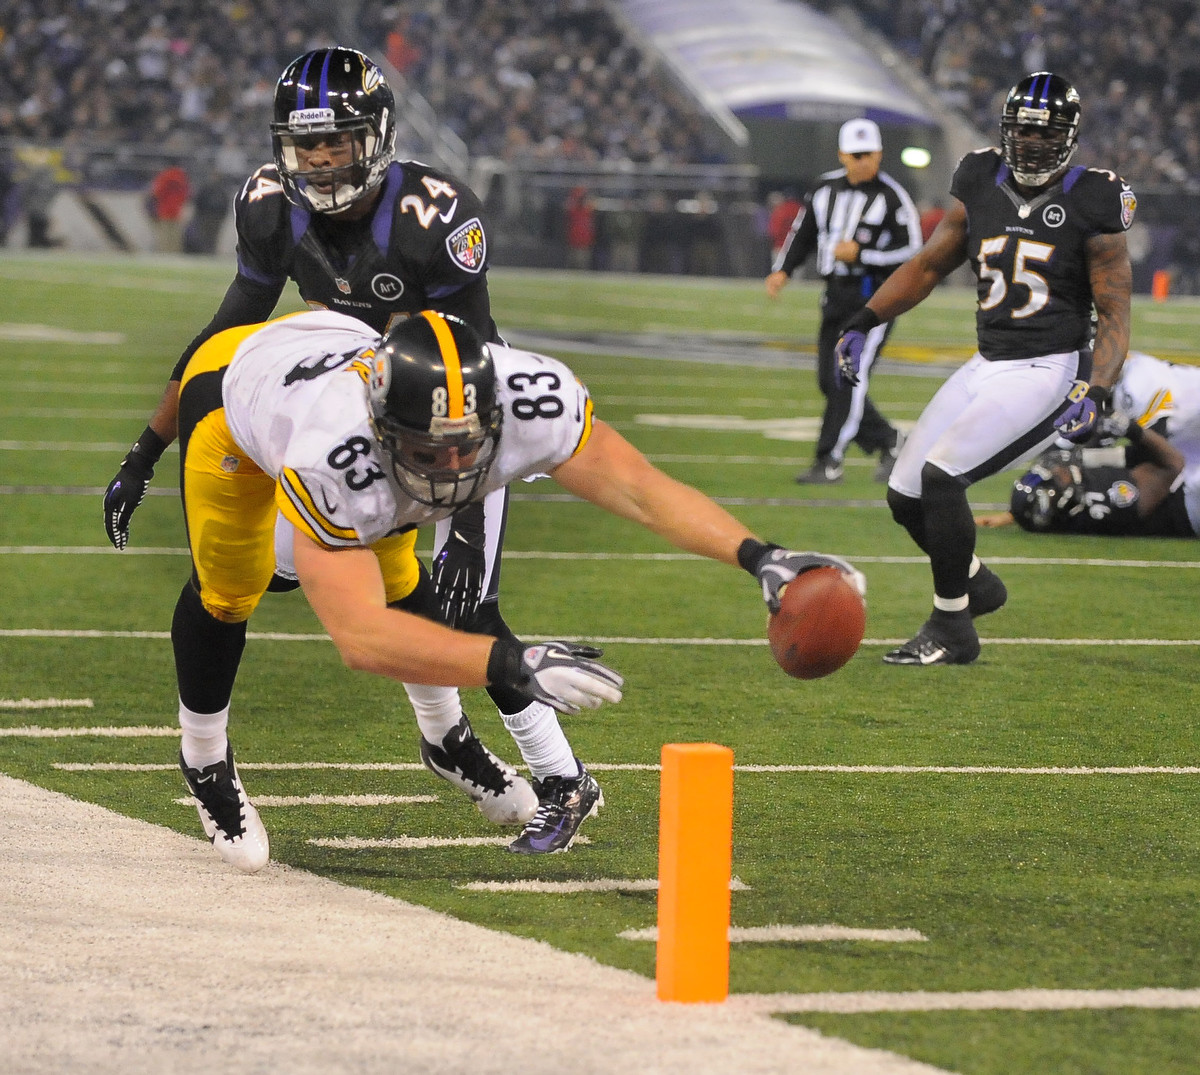 Rough Cut: A raw edit from the Ravens 23-20 loss to the Pittsburgh Steelers